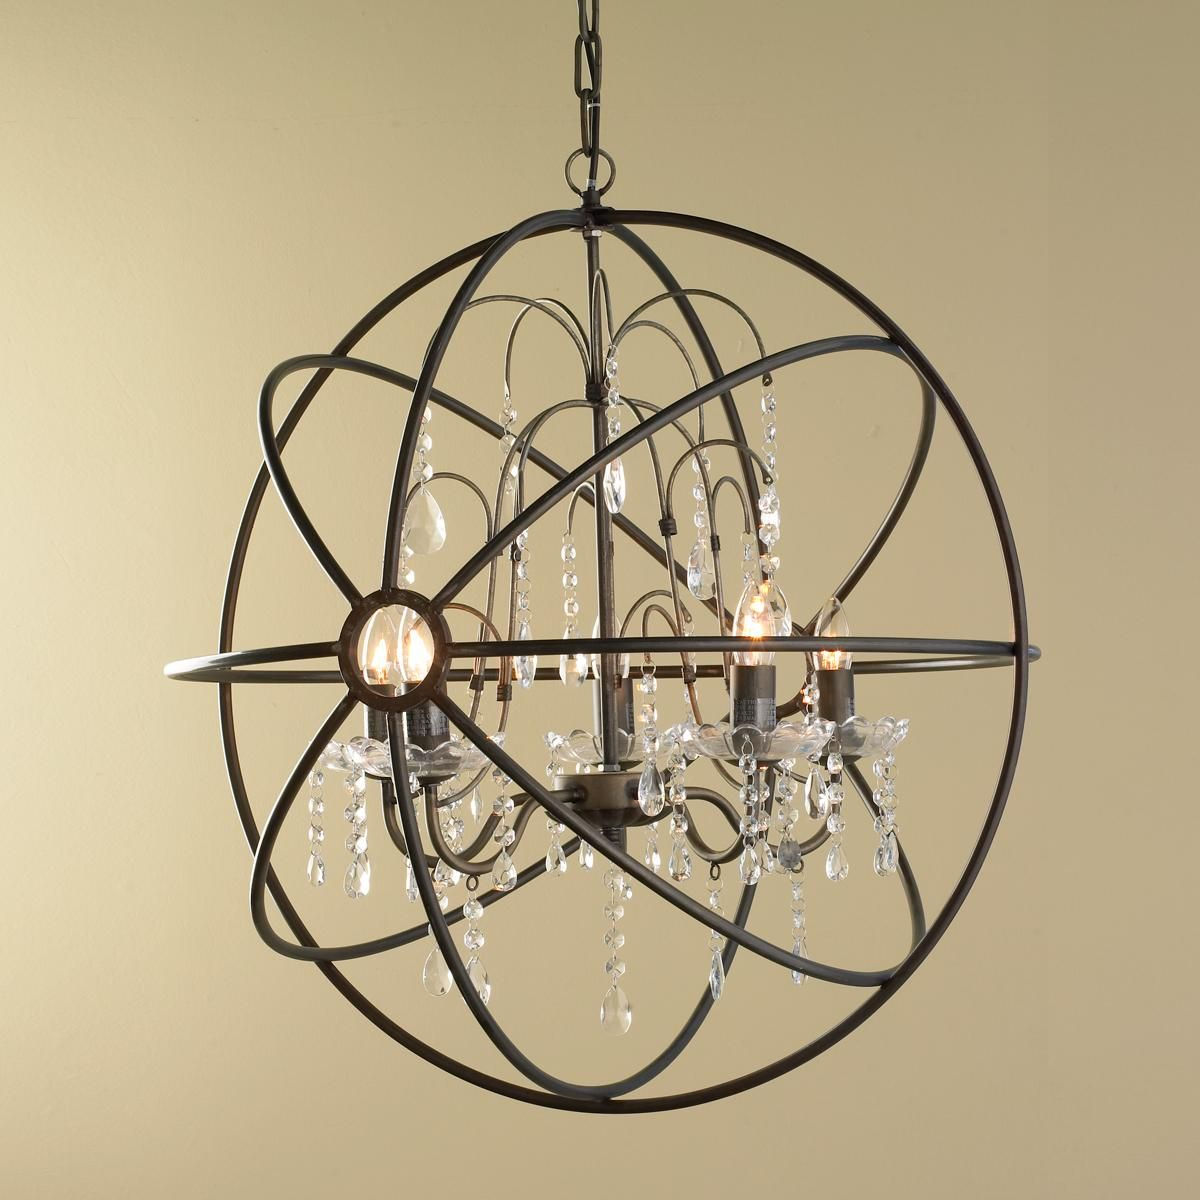 Crystal And Metal Orb Chandelier Home Design Gallery Pinterest - Chandelier with shades and crystals